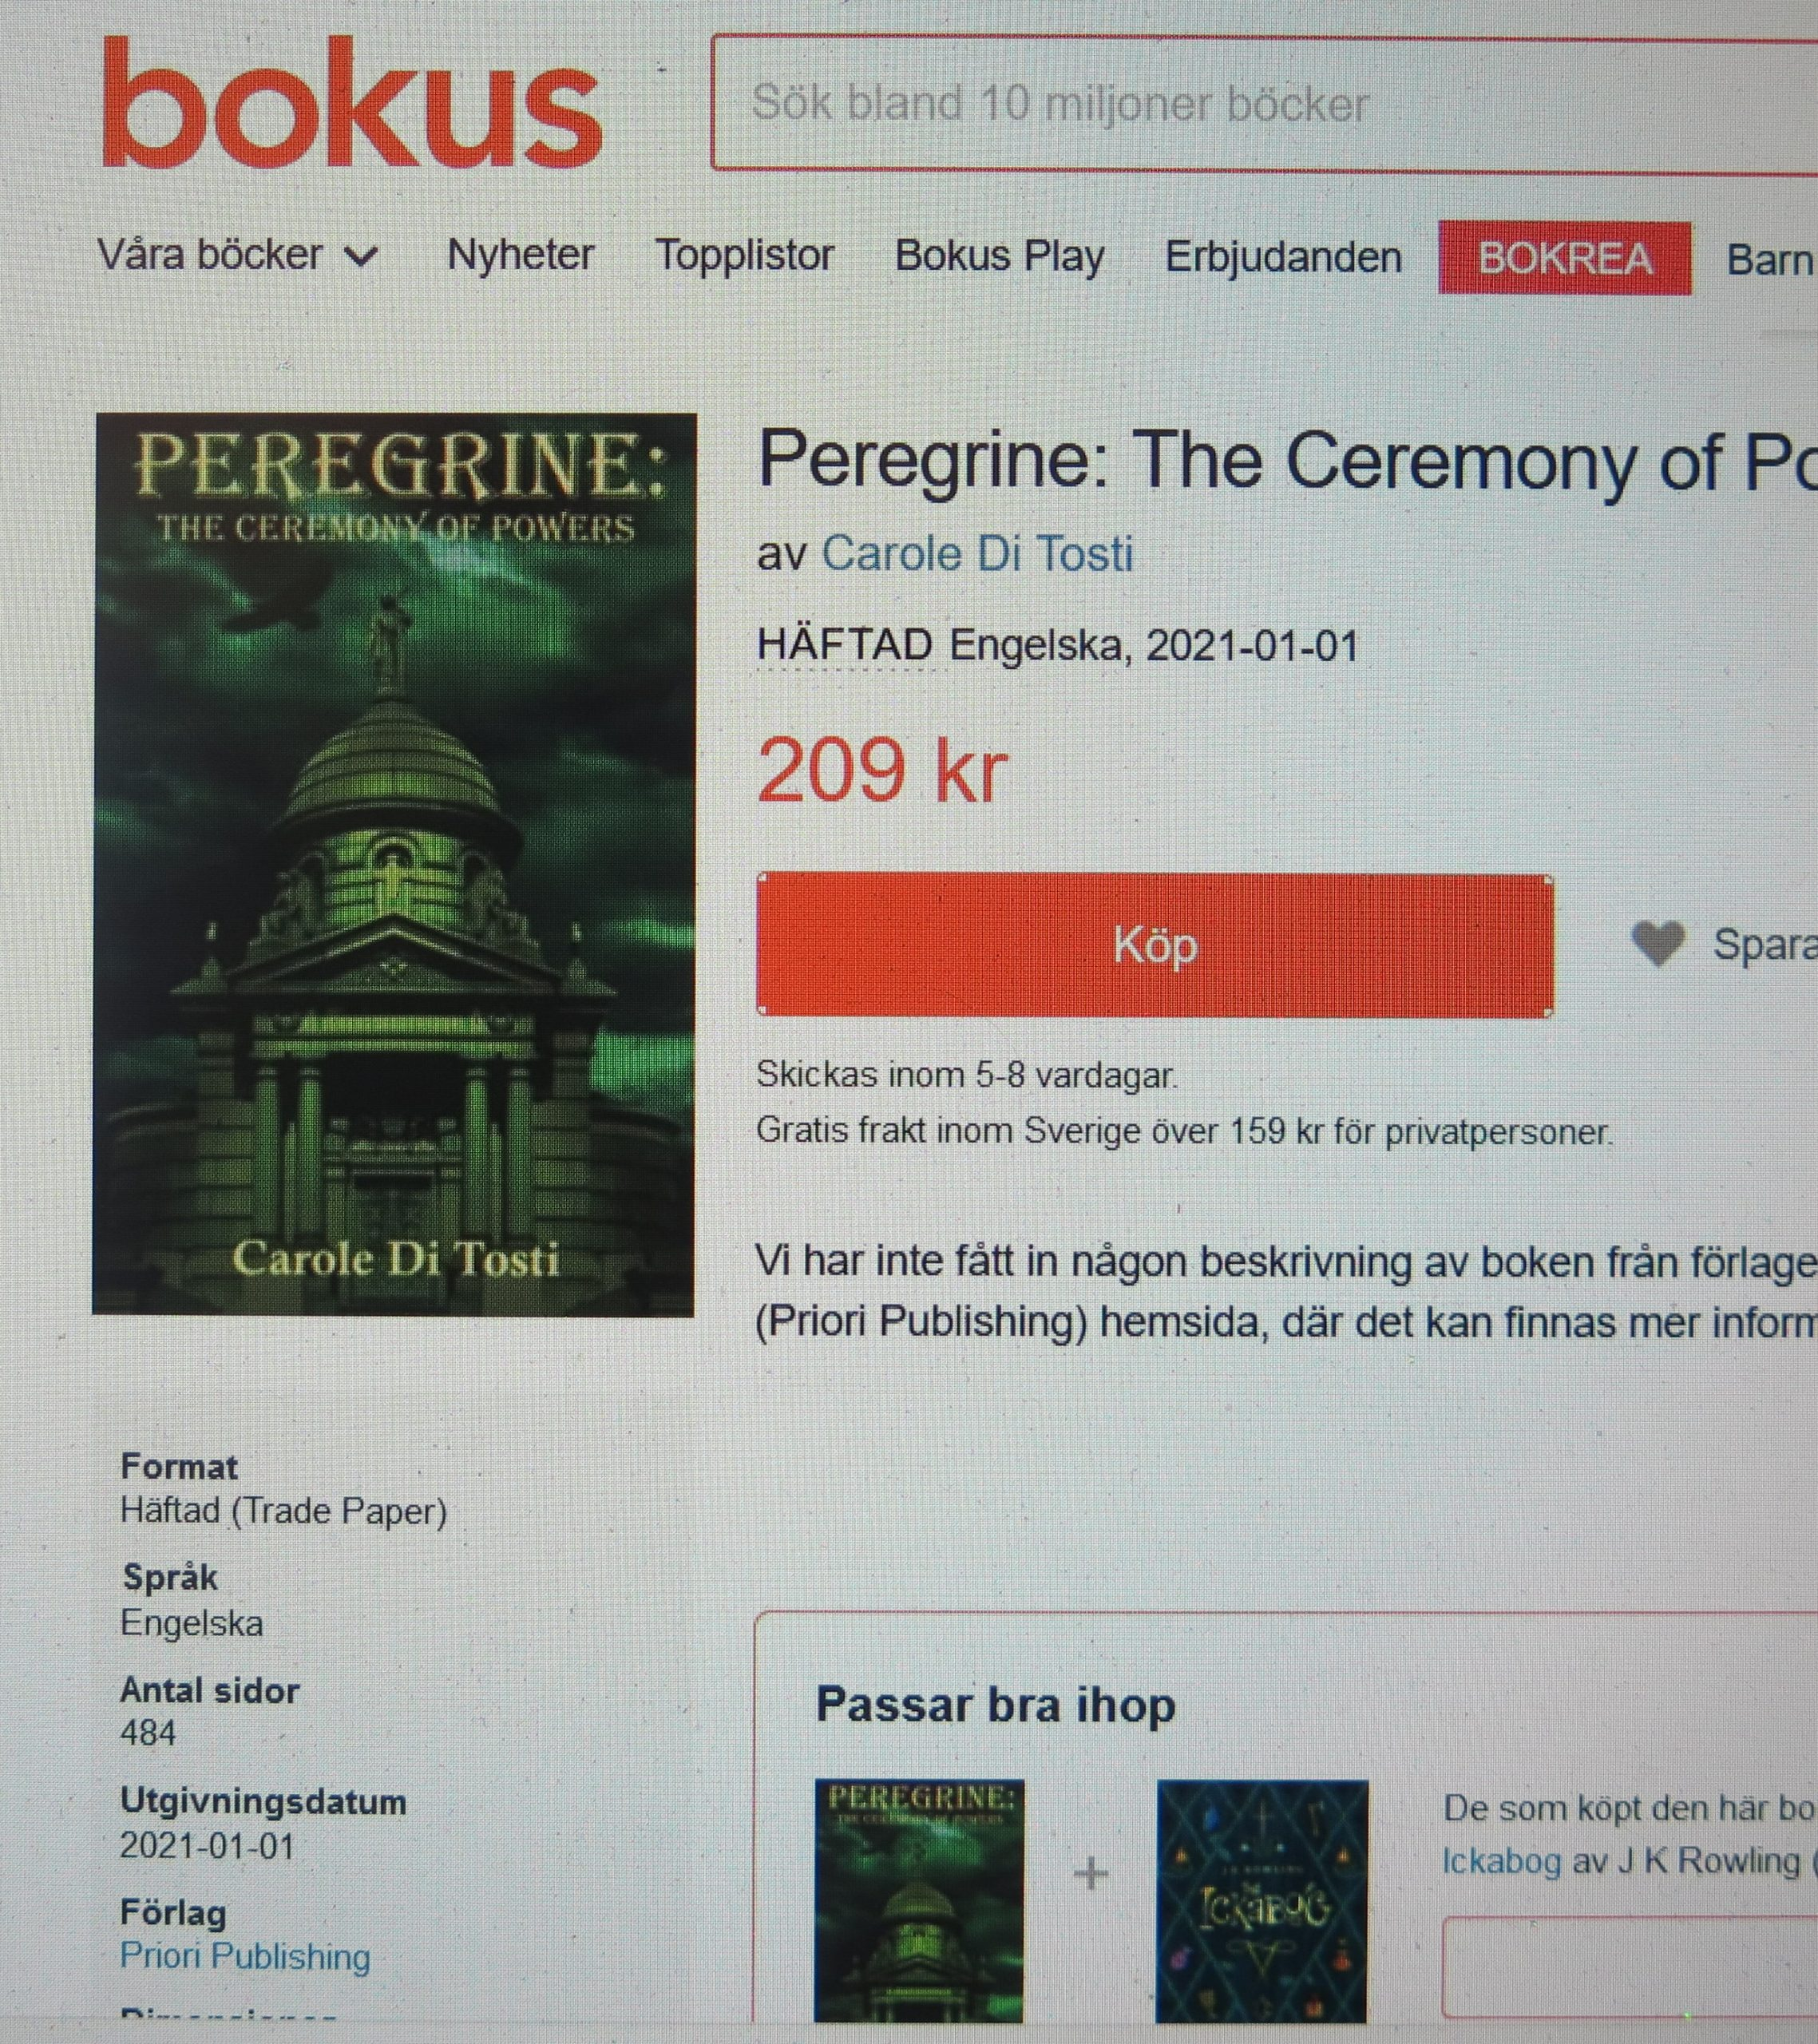 Peregrine: The Ceremony of Powers, Carole Di Tosti